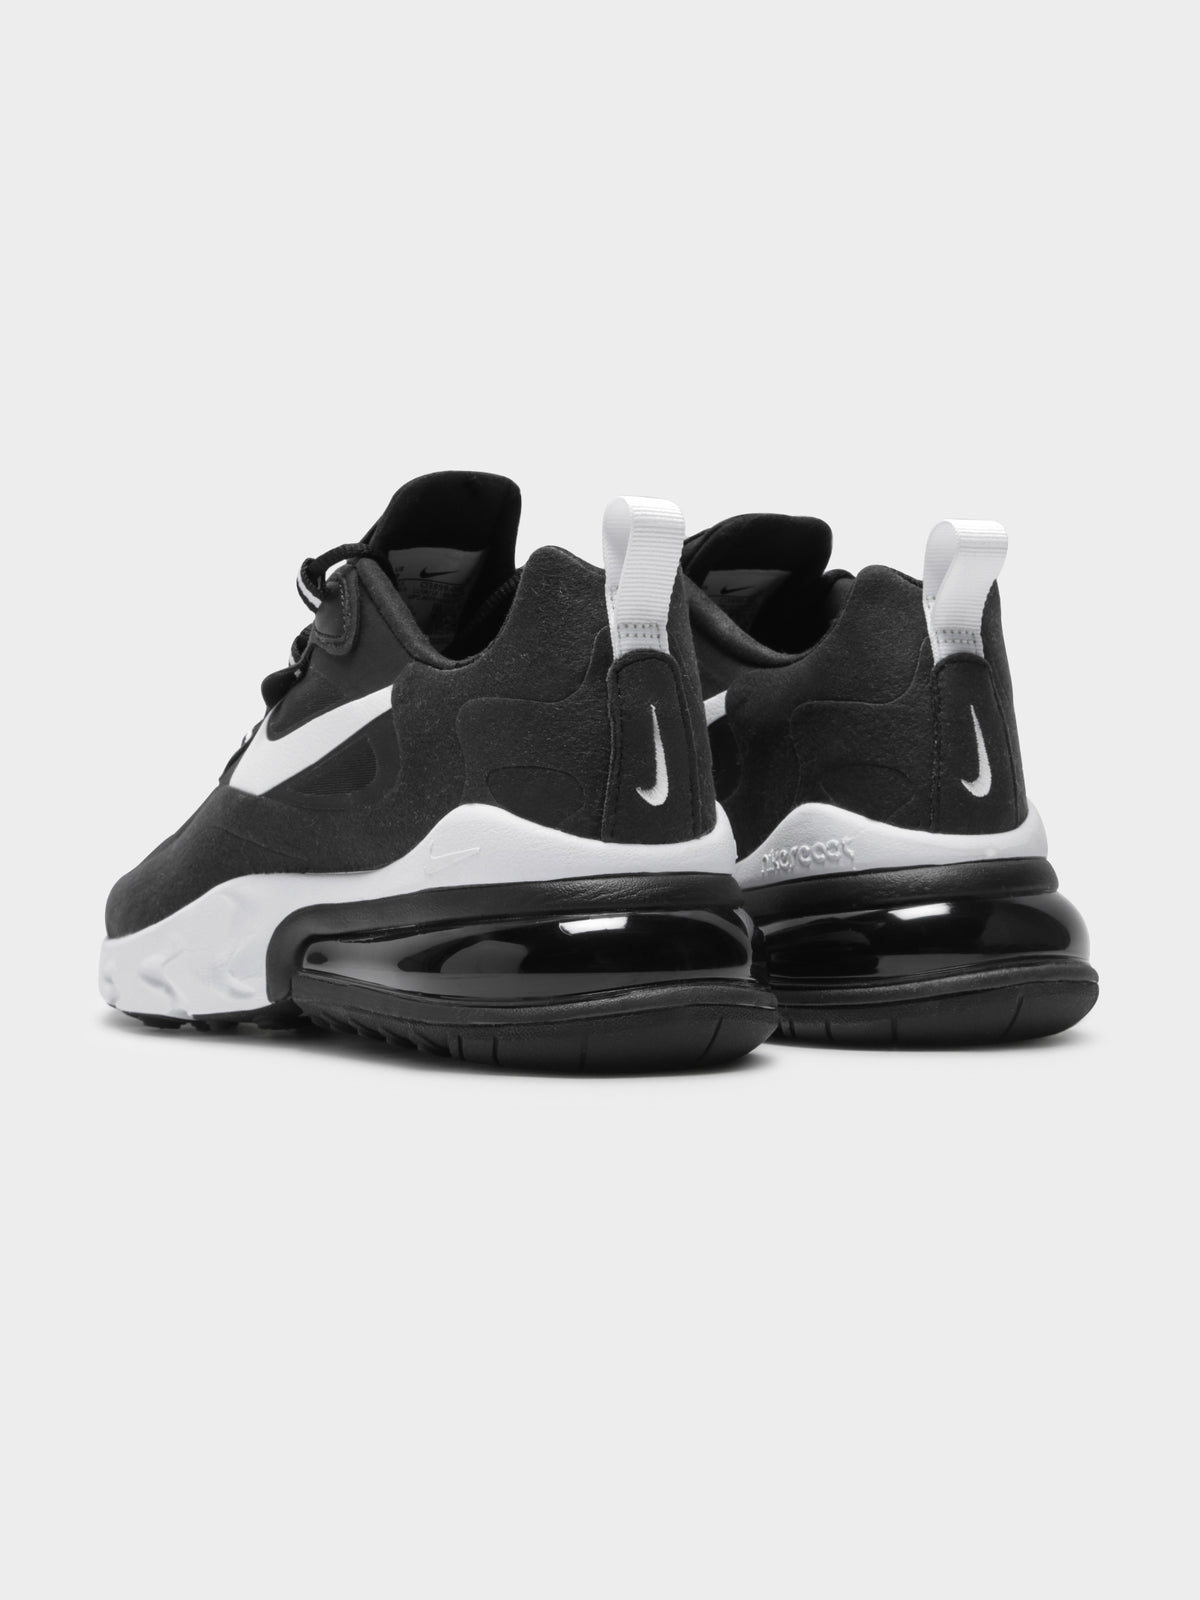 Womens Air Max React 270 Sneakers in Black & White